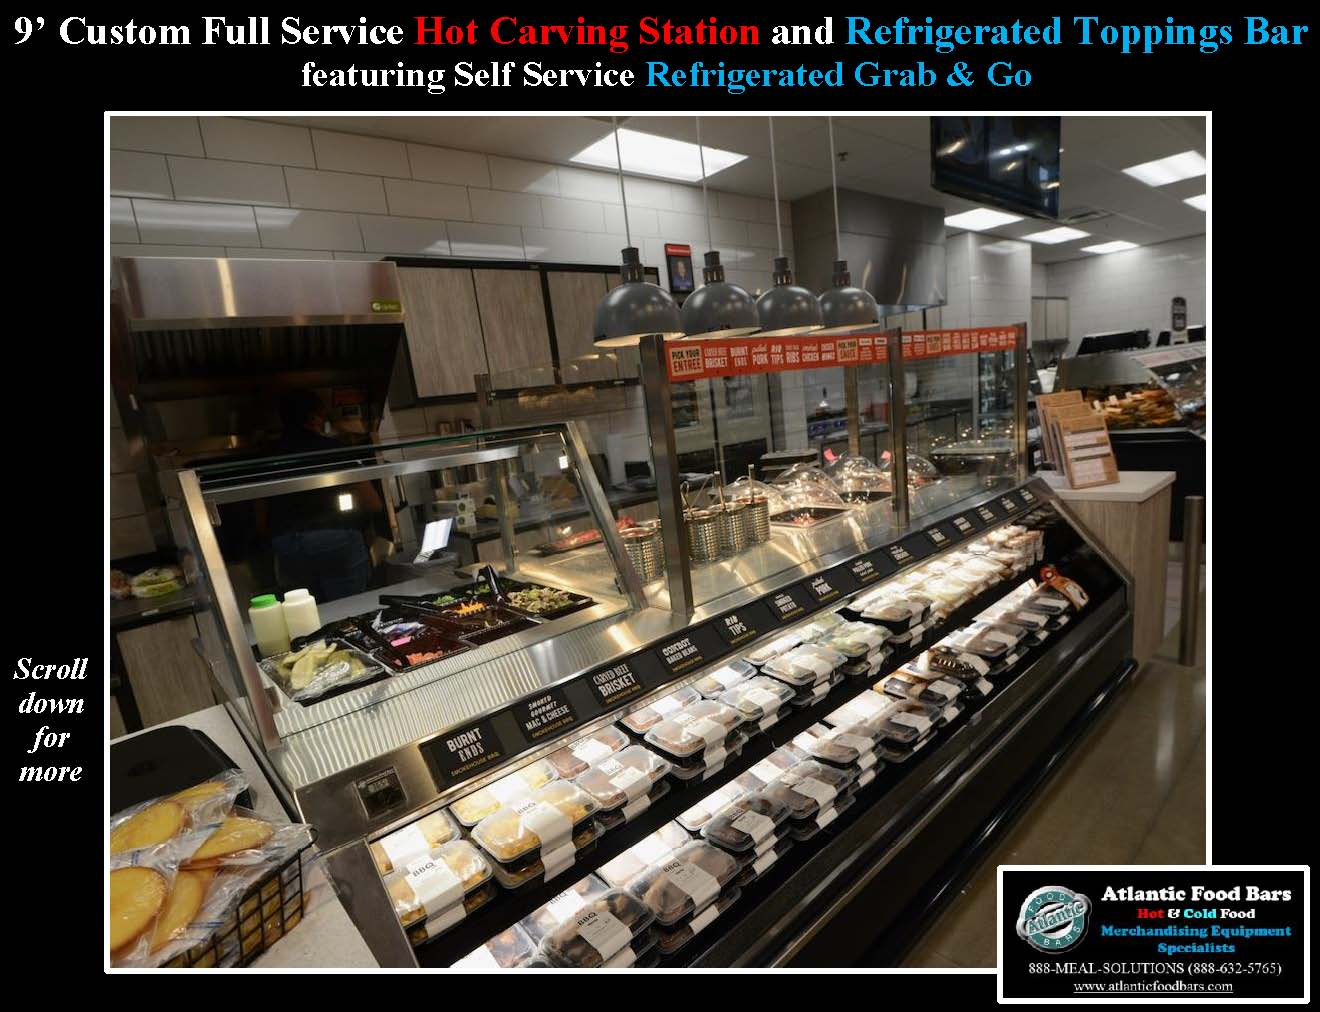 Atlantic Food Bars - Hot and Cold Prepared Foods Lineup including Custom Carving Station and Toppings Bar, Hot Packaged Food and Refrigerated Grab and Go - WRGCL SHFB_Page_2